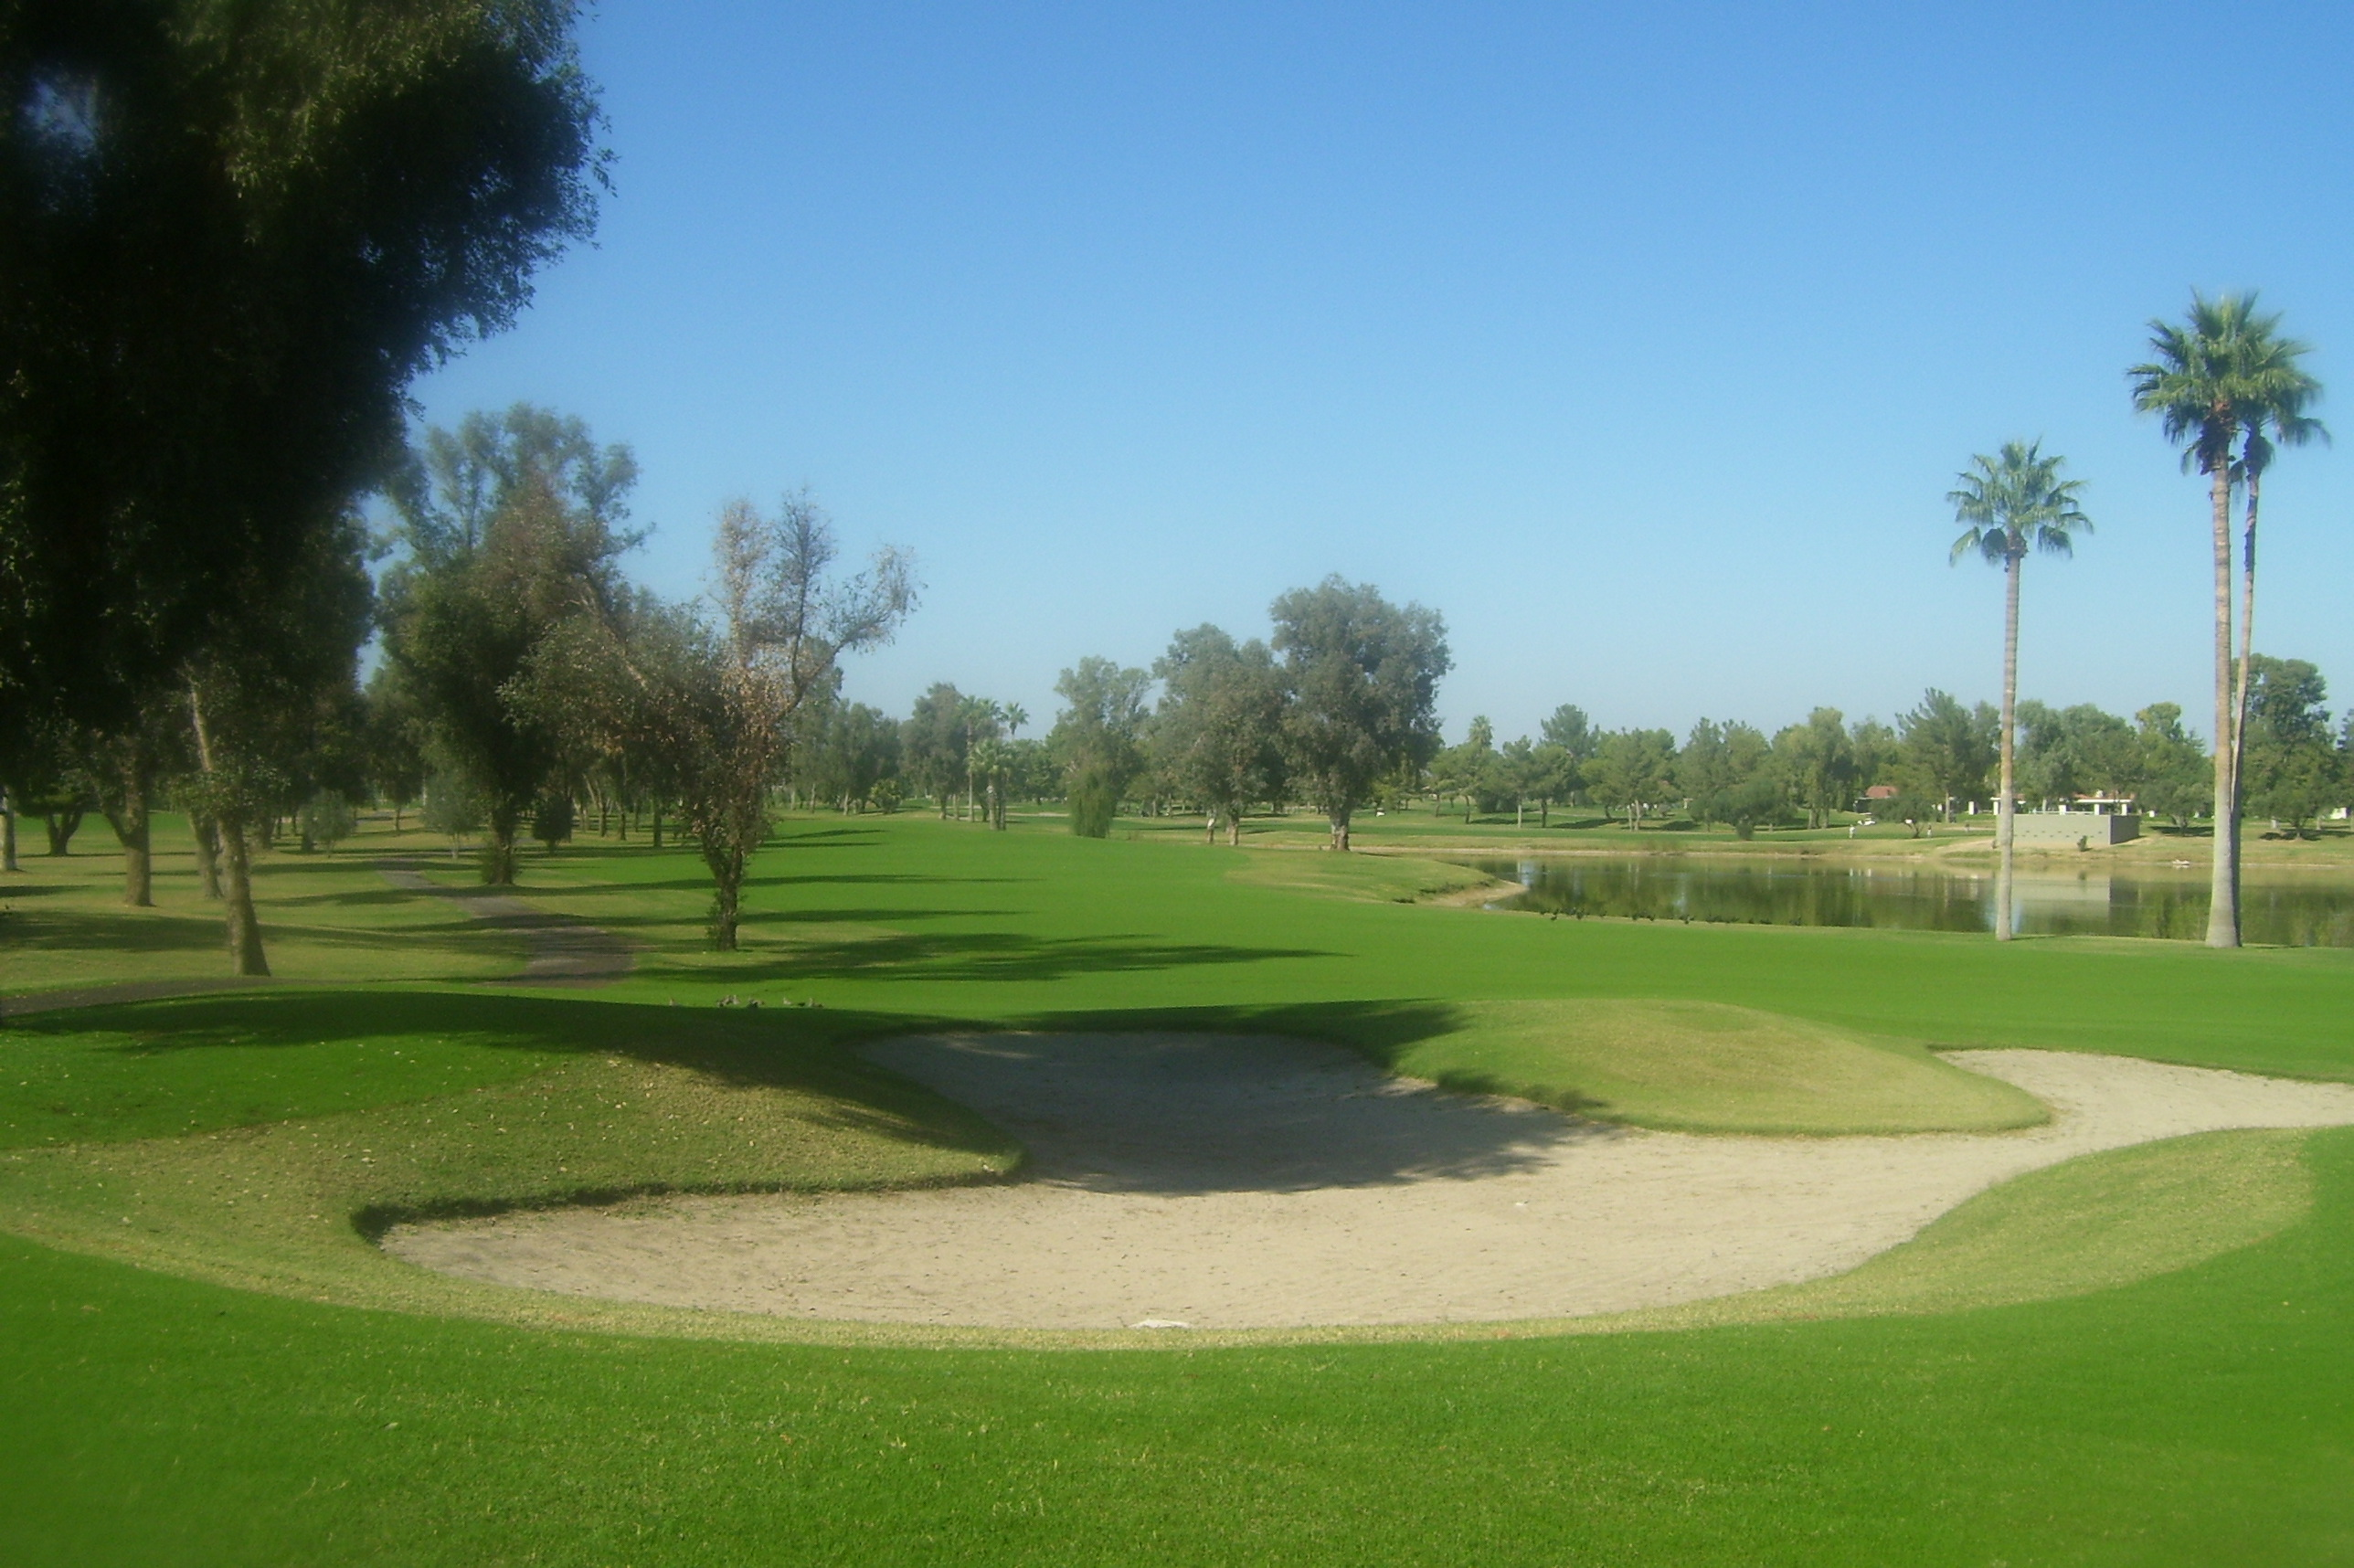 The McCormick Ranch Subdivision Series: Villa La Playa